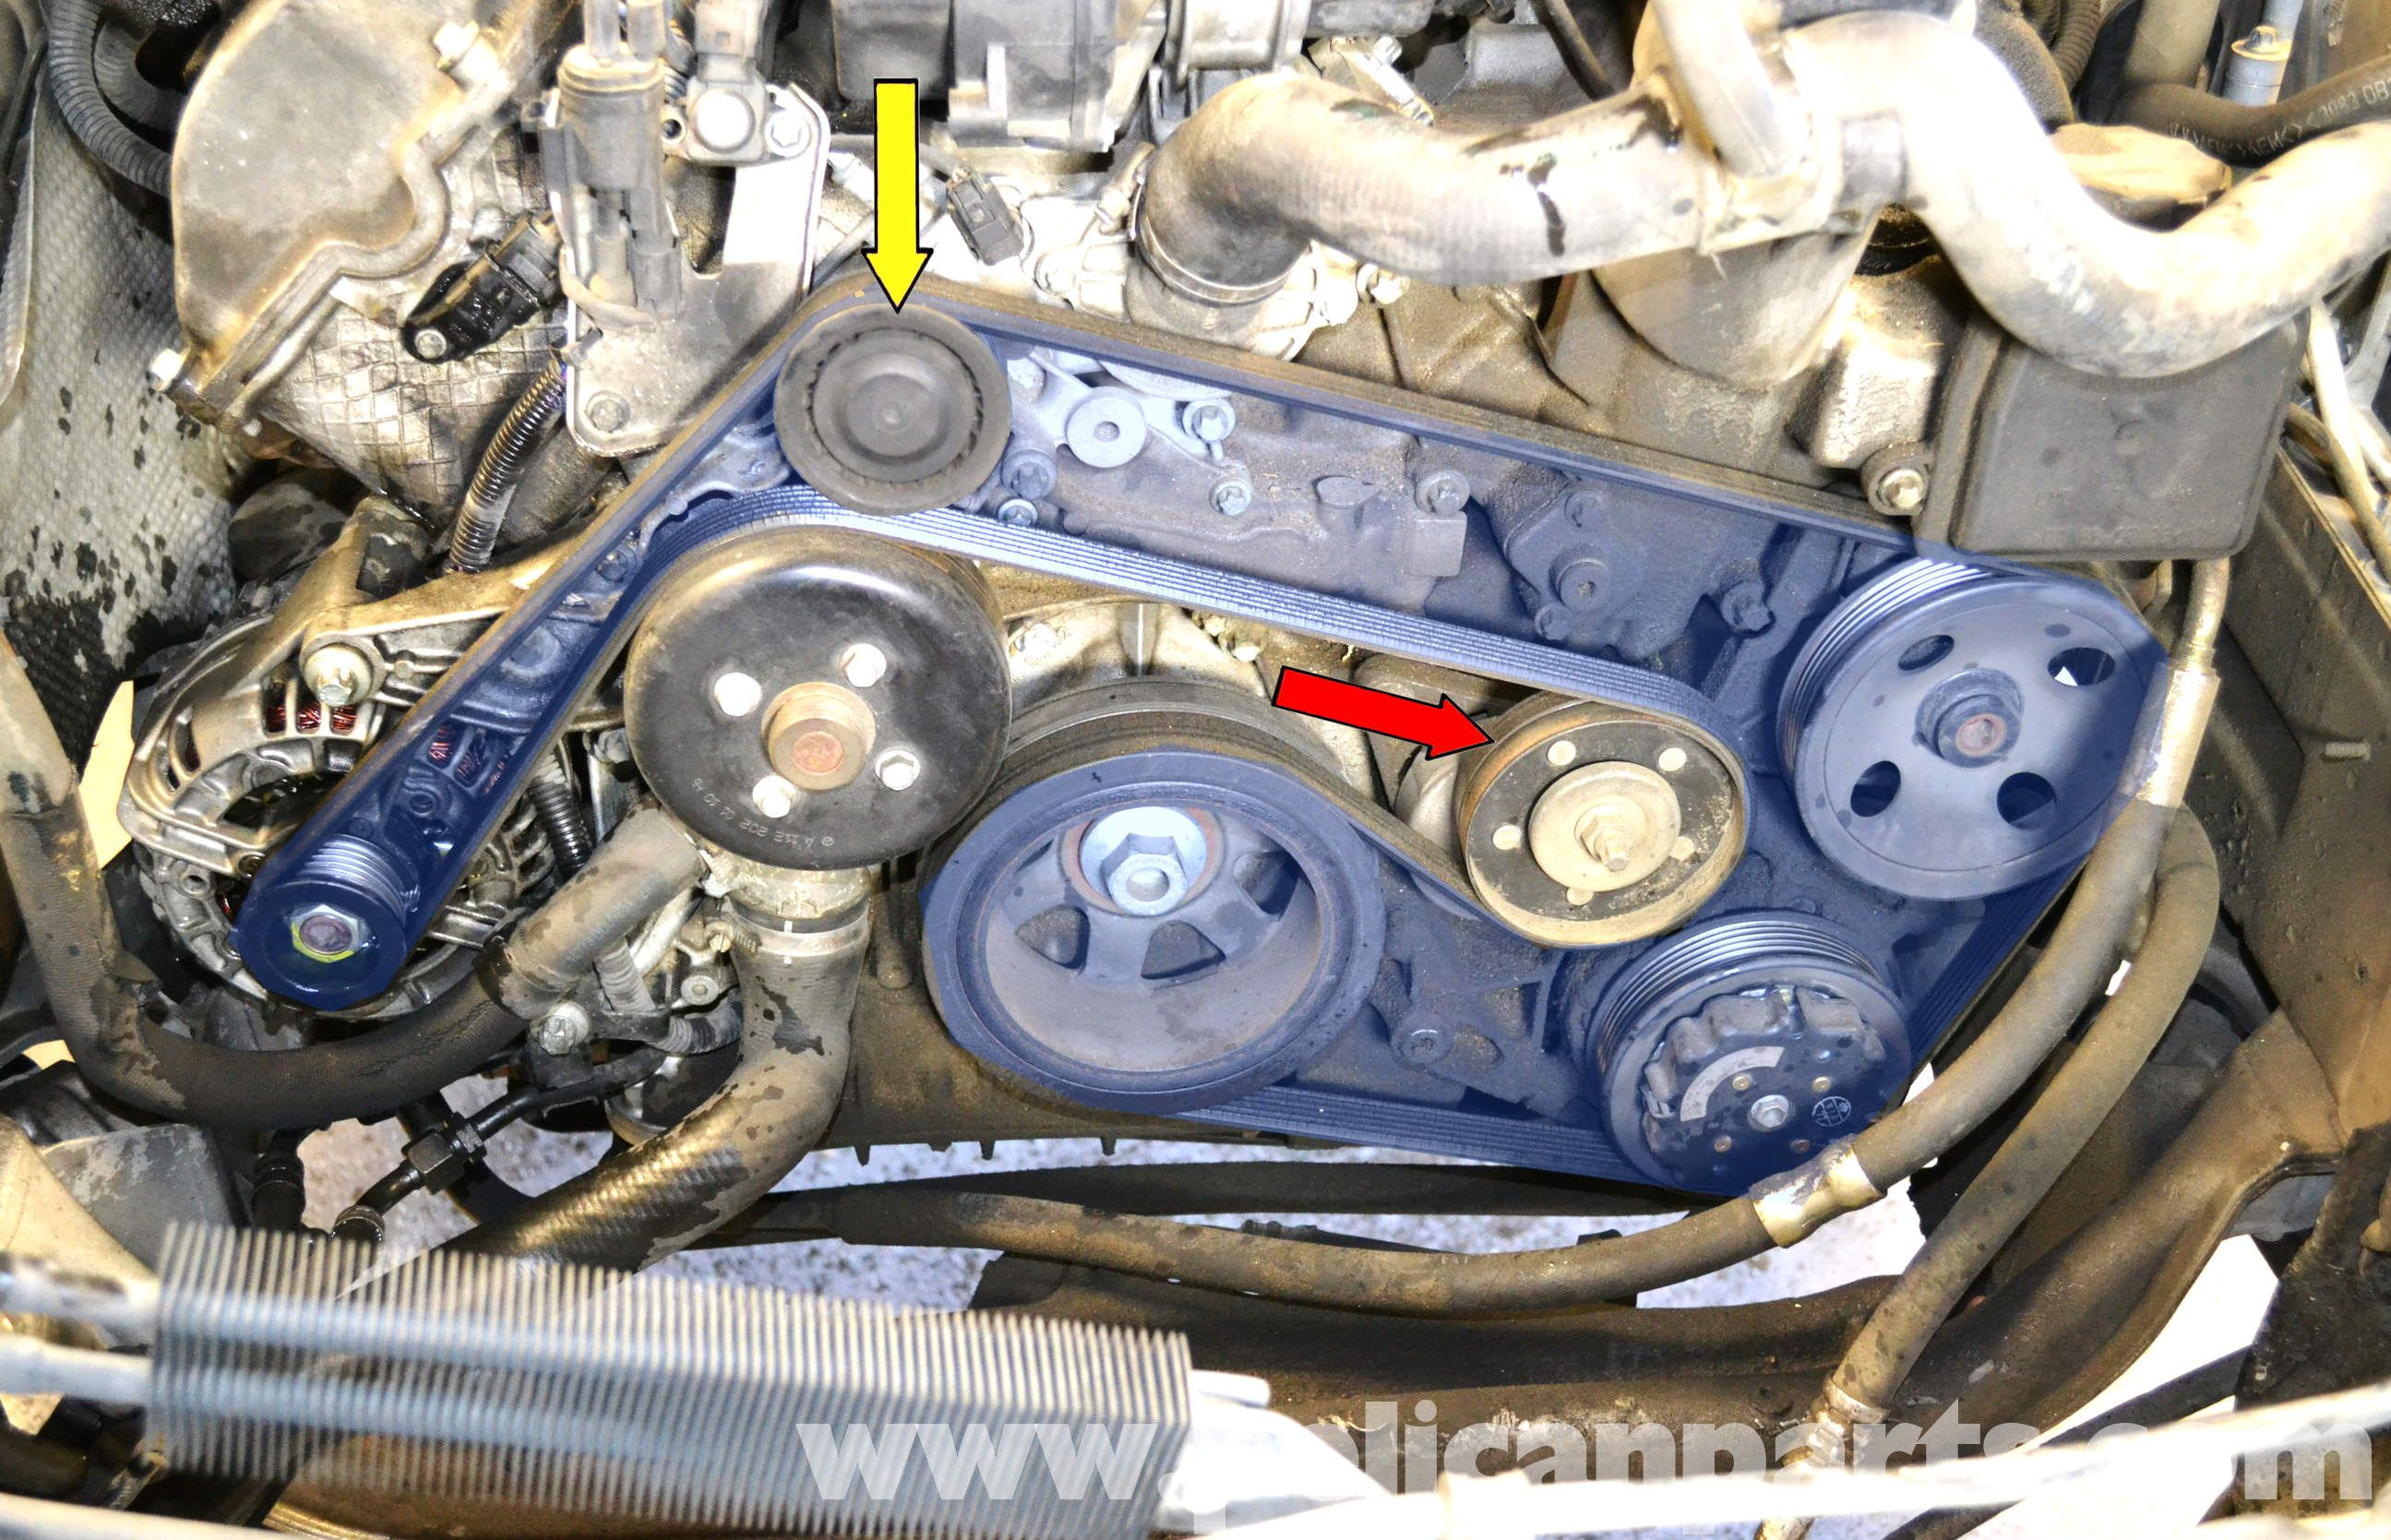 Mercedes-Benz W203 Water Pump Replacement - (2001-2007) C230, C280 .